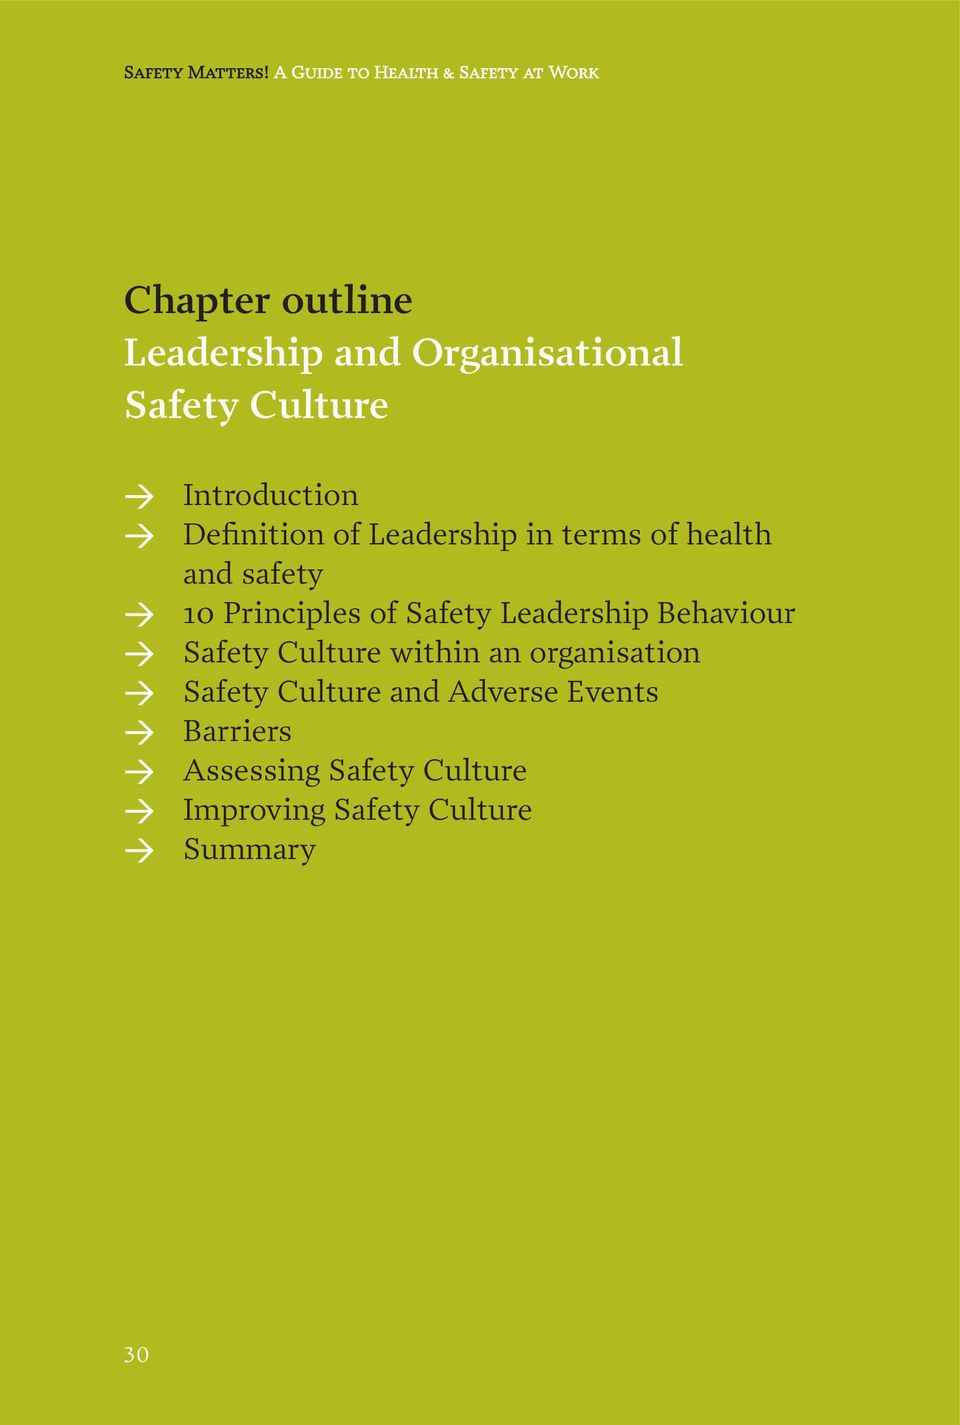 > Introduction > Definition of Leadership in terms of health and safety > 10 Principles of